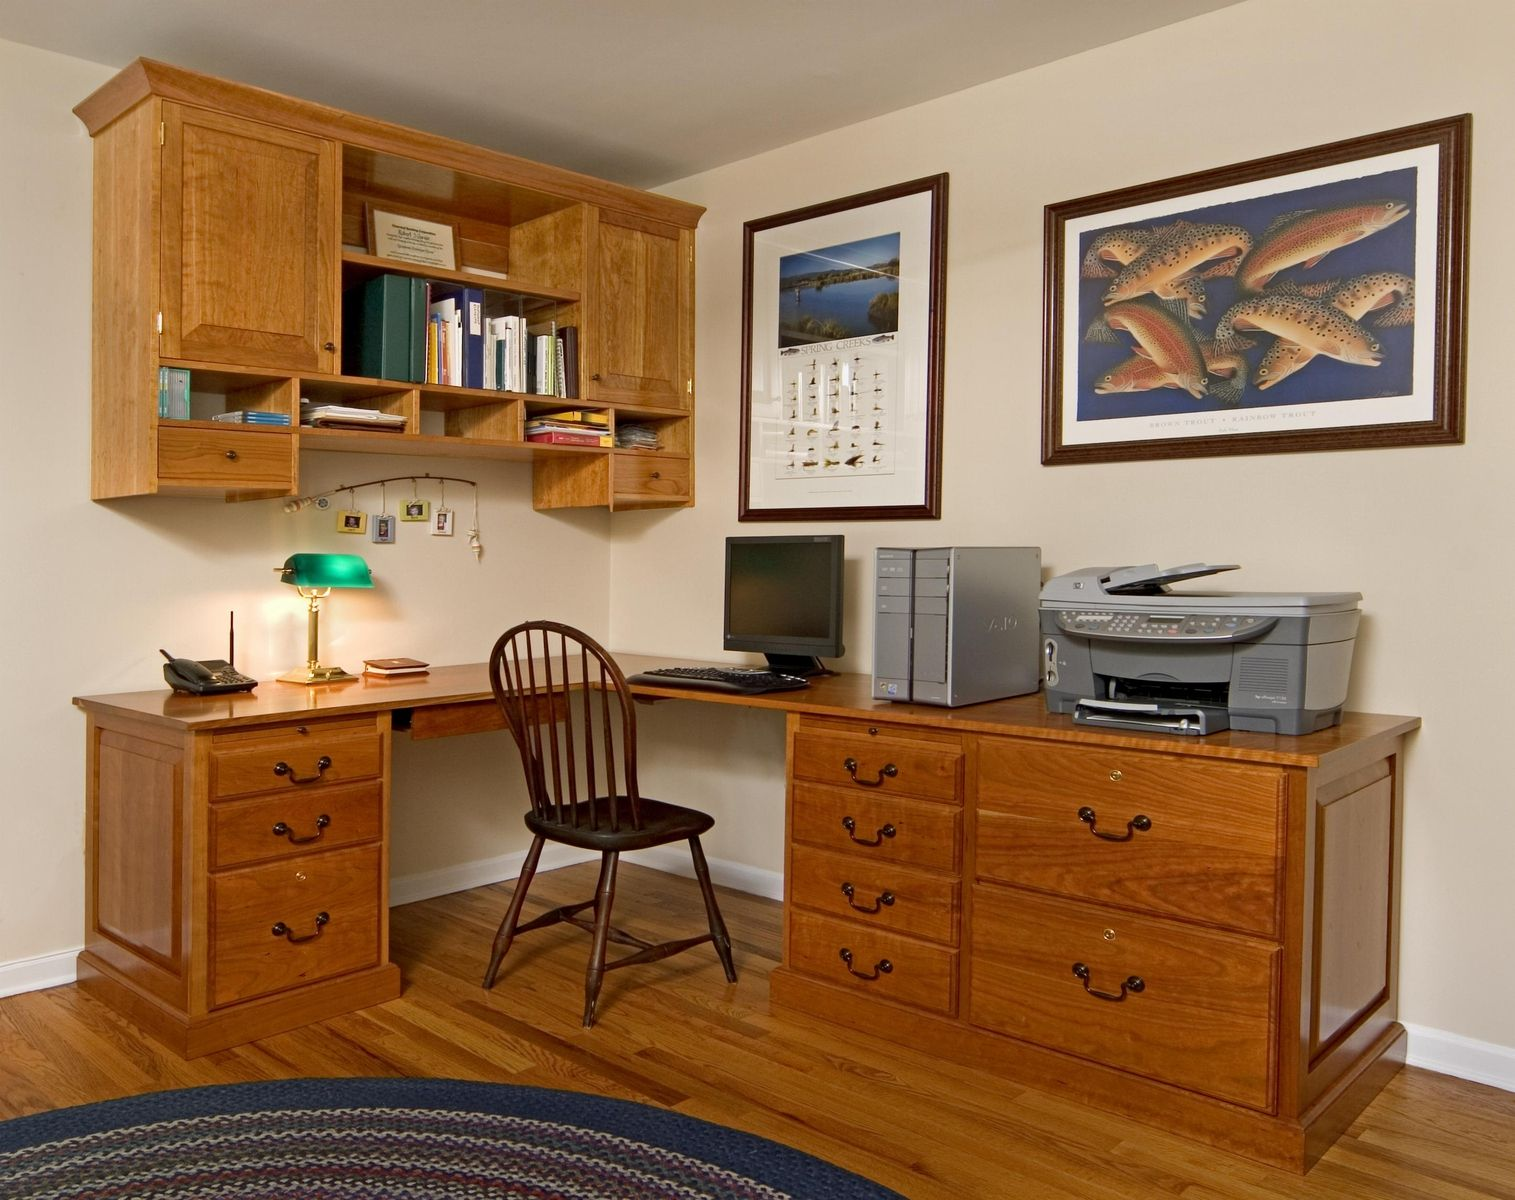 Handmade Custom Home Office Desk And Cabinet By John Landis Cabinetworks